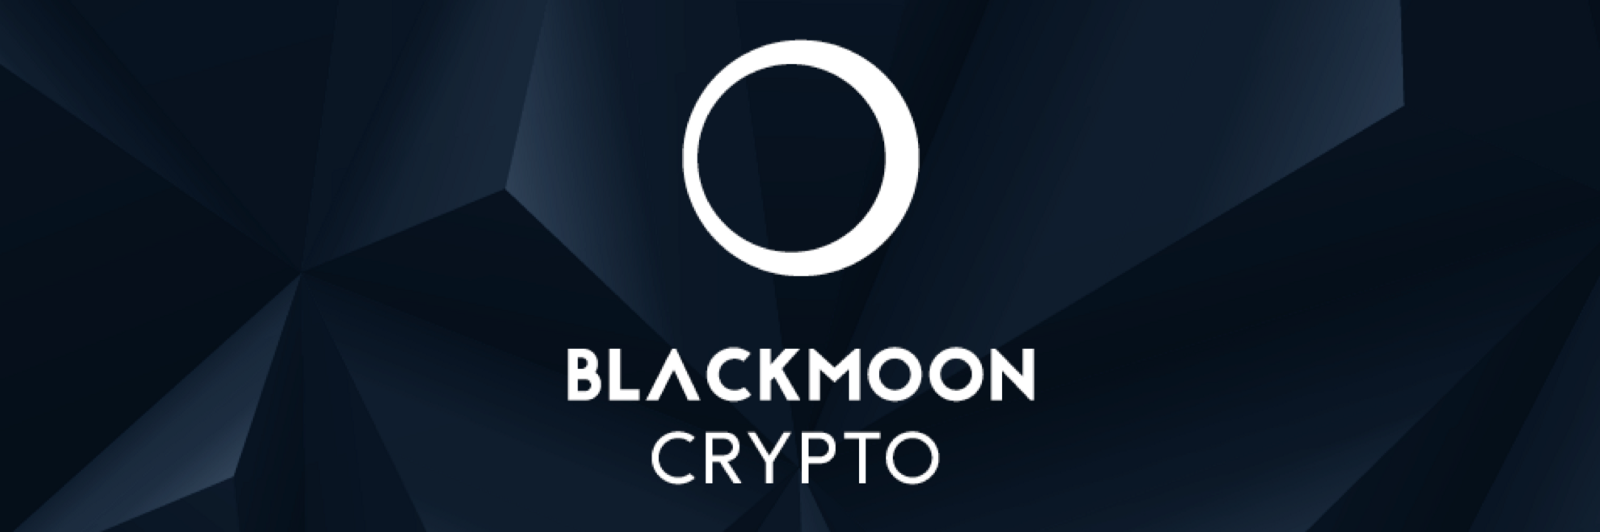 Blackmoon financial group launches